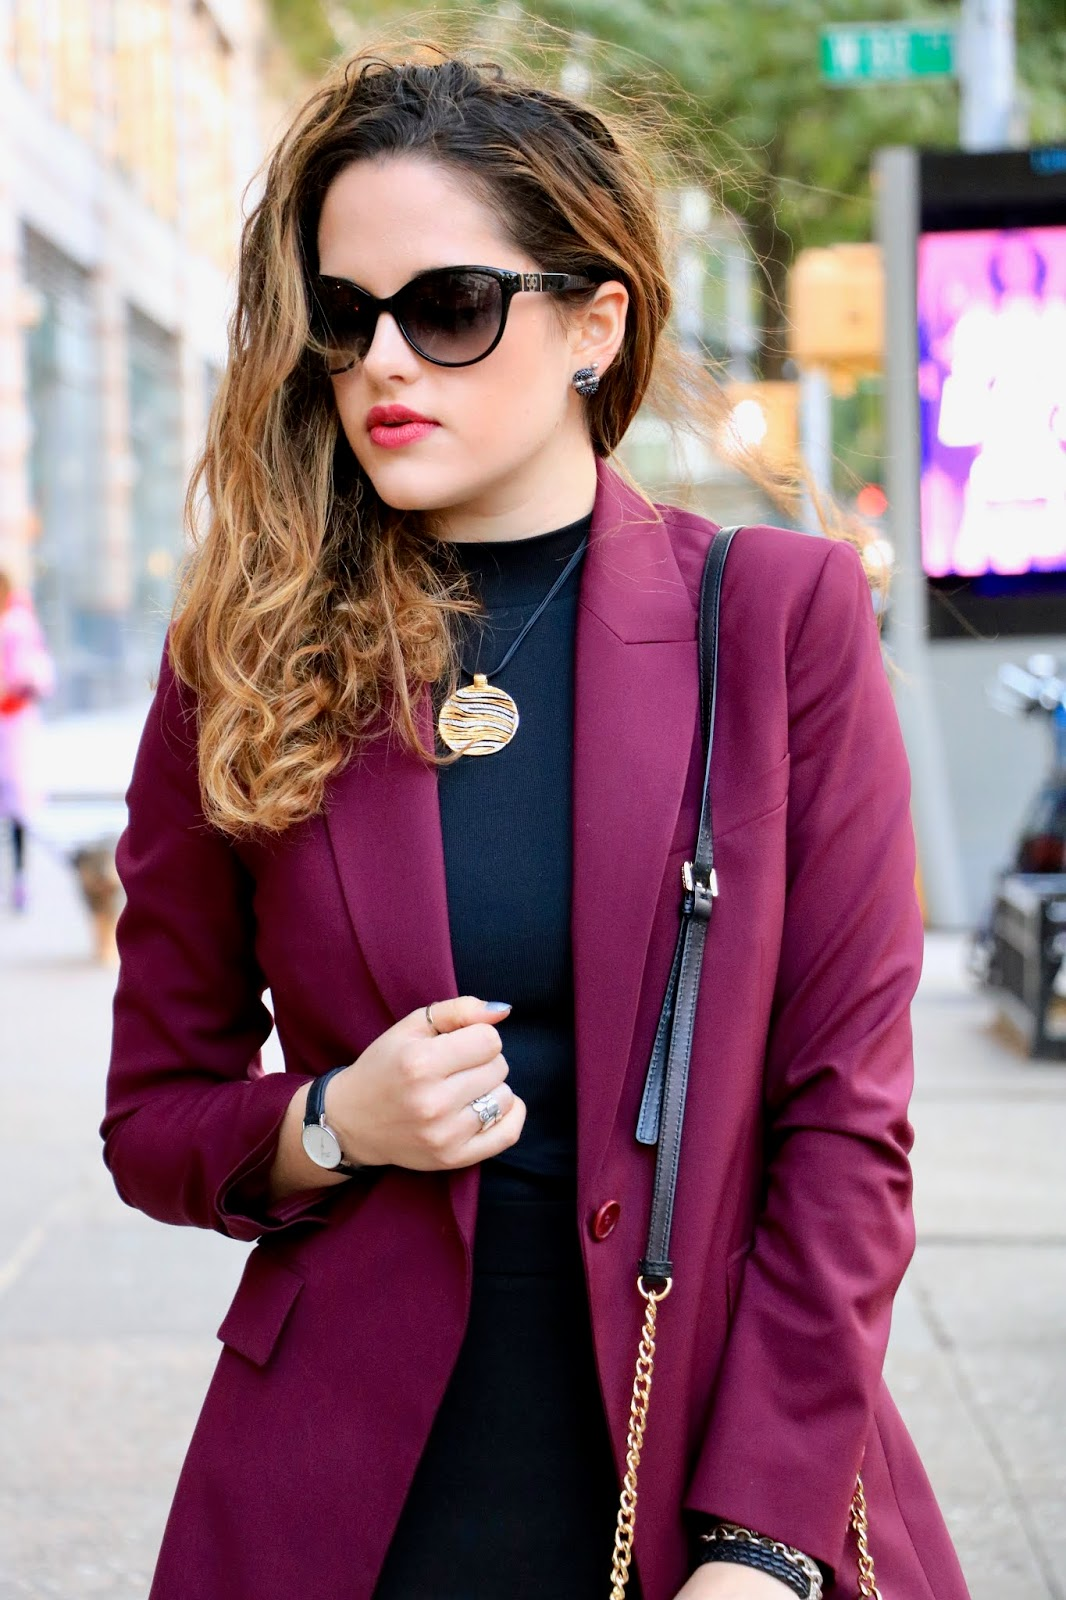 Nyc fashion blogger Kathleen Harper's outfit ideas